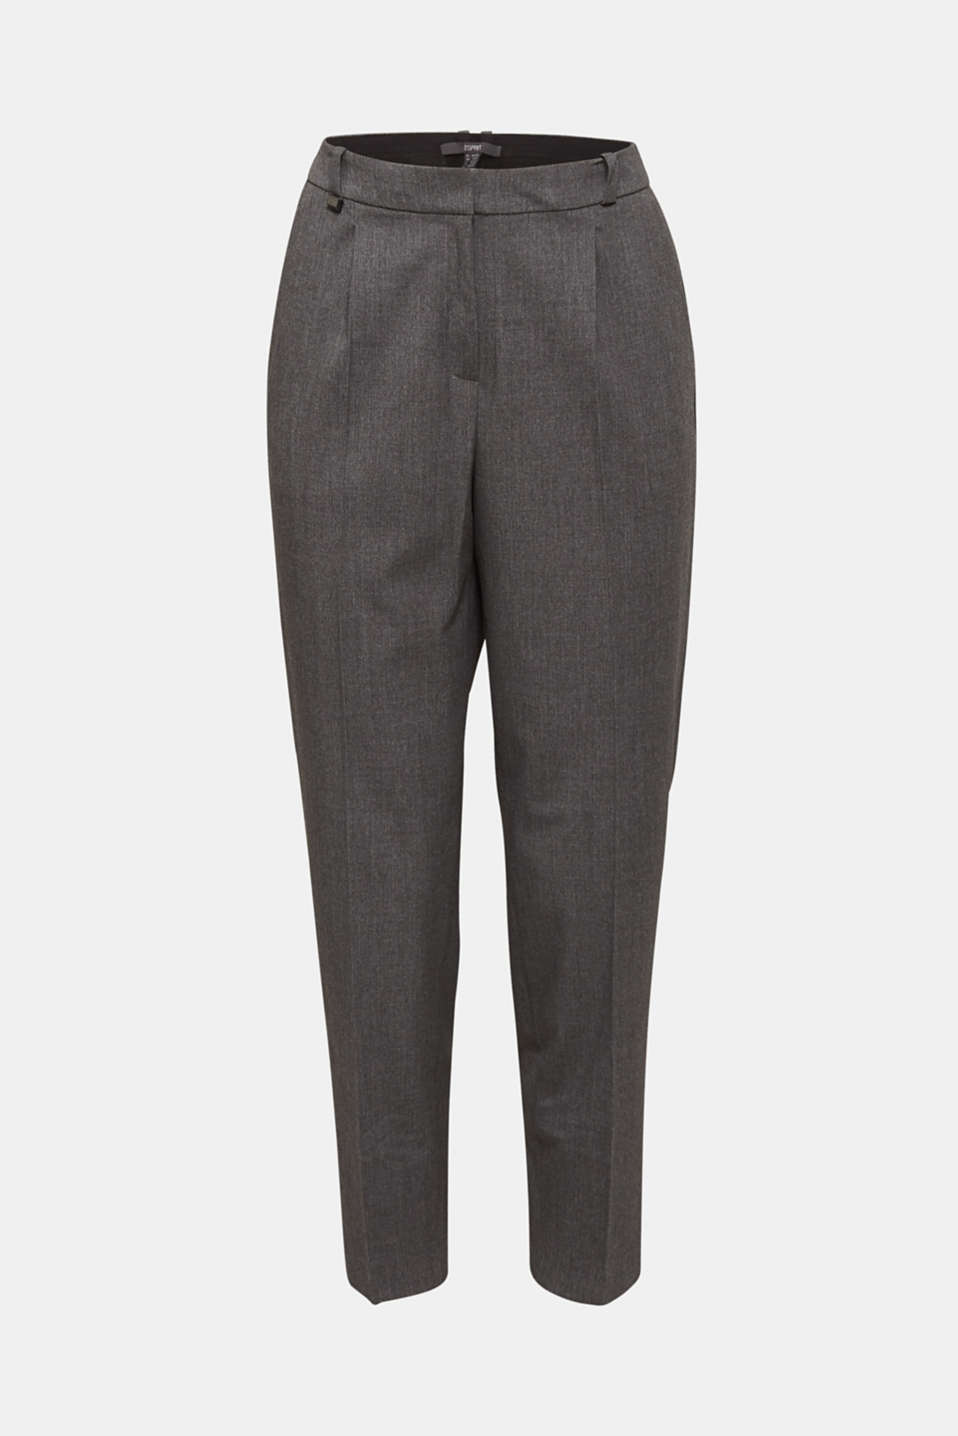 PURE BUSINESS stretch trousers with waist pleats, MEDIUM GREY 5, detail image number 6